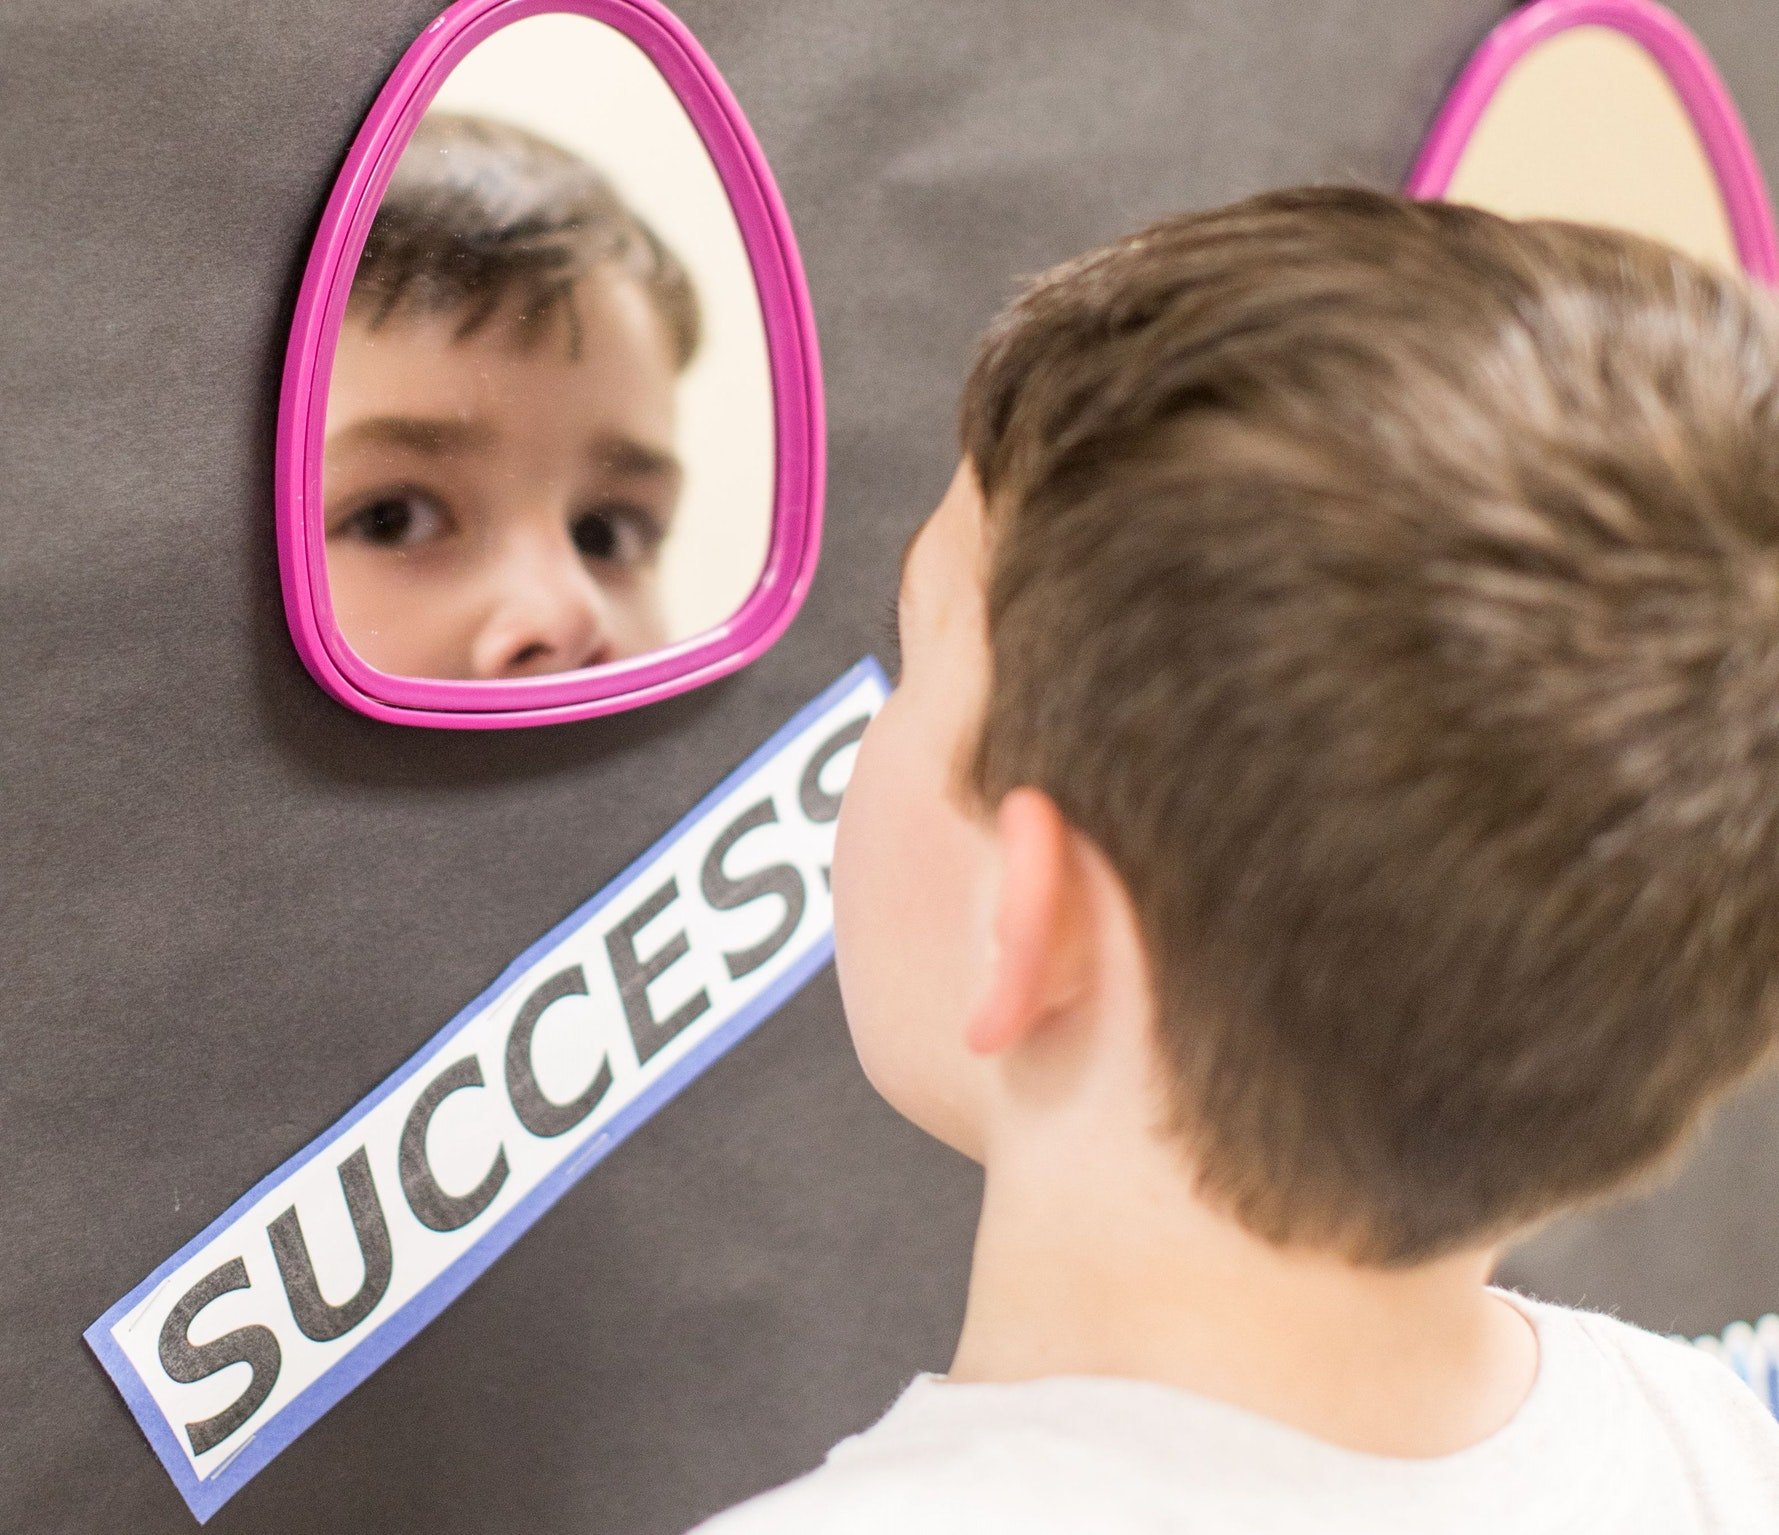 Young male student looks at camera through mirror reflection